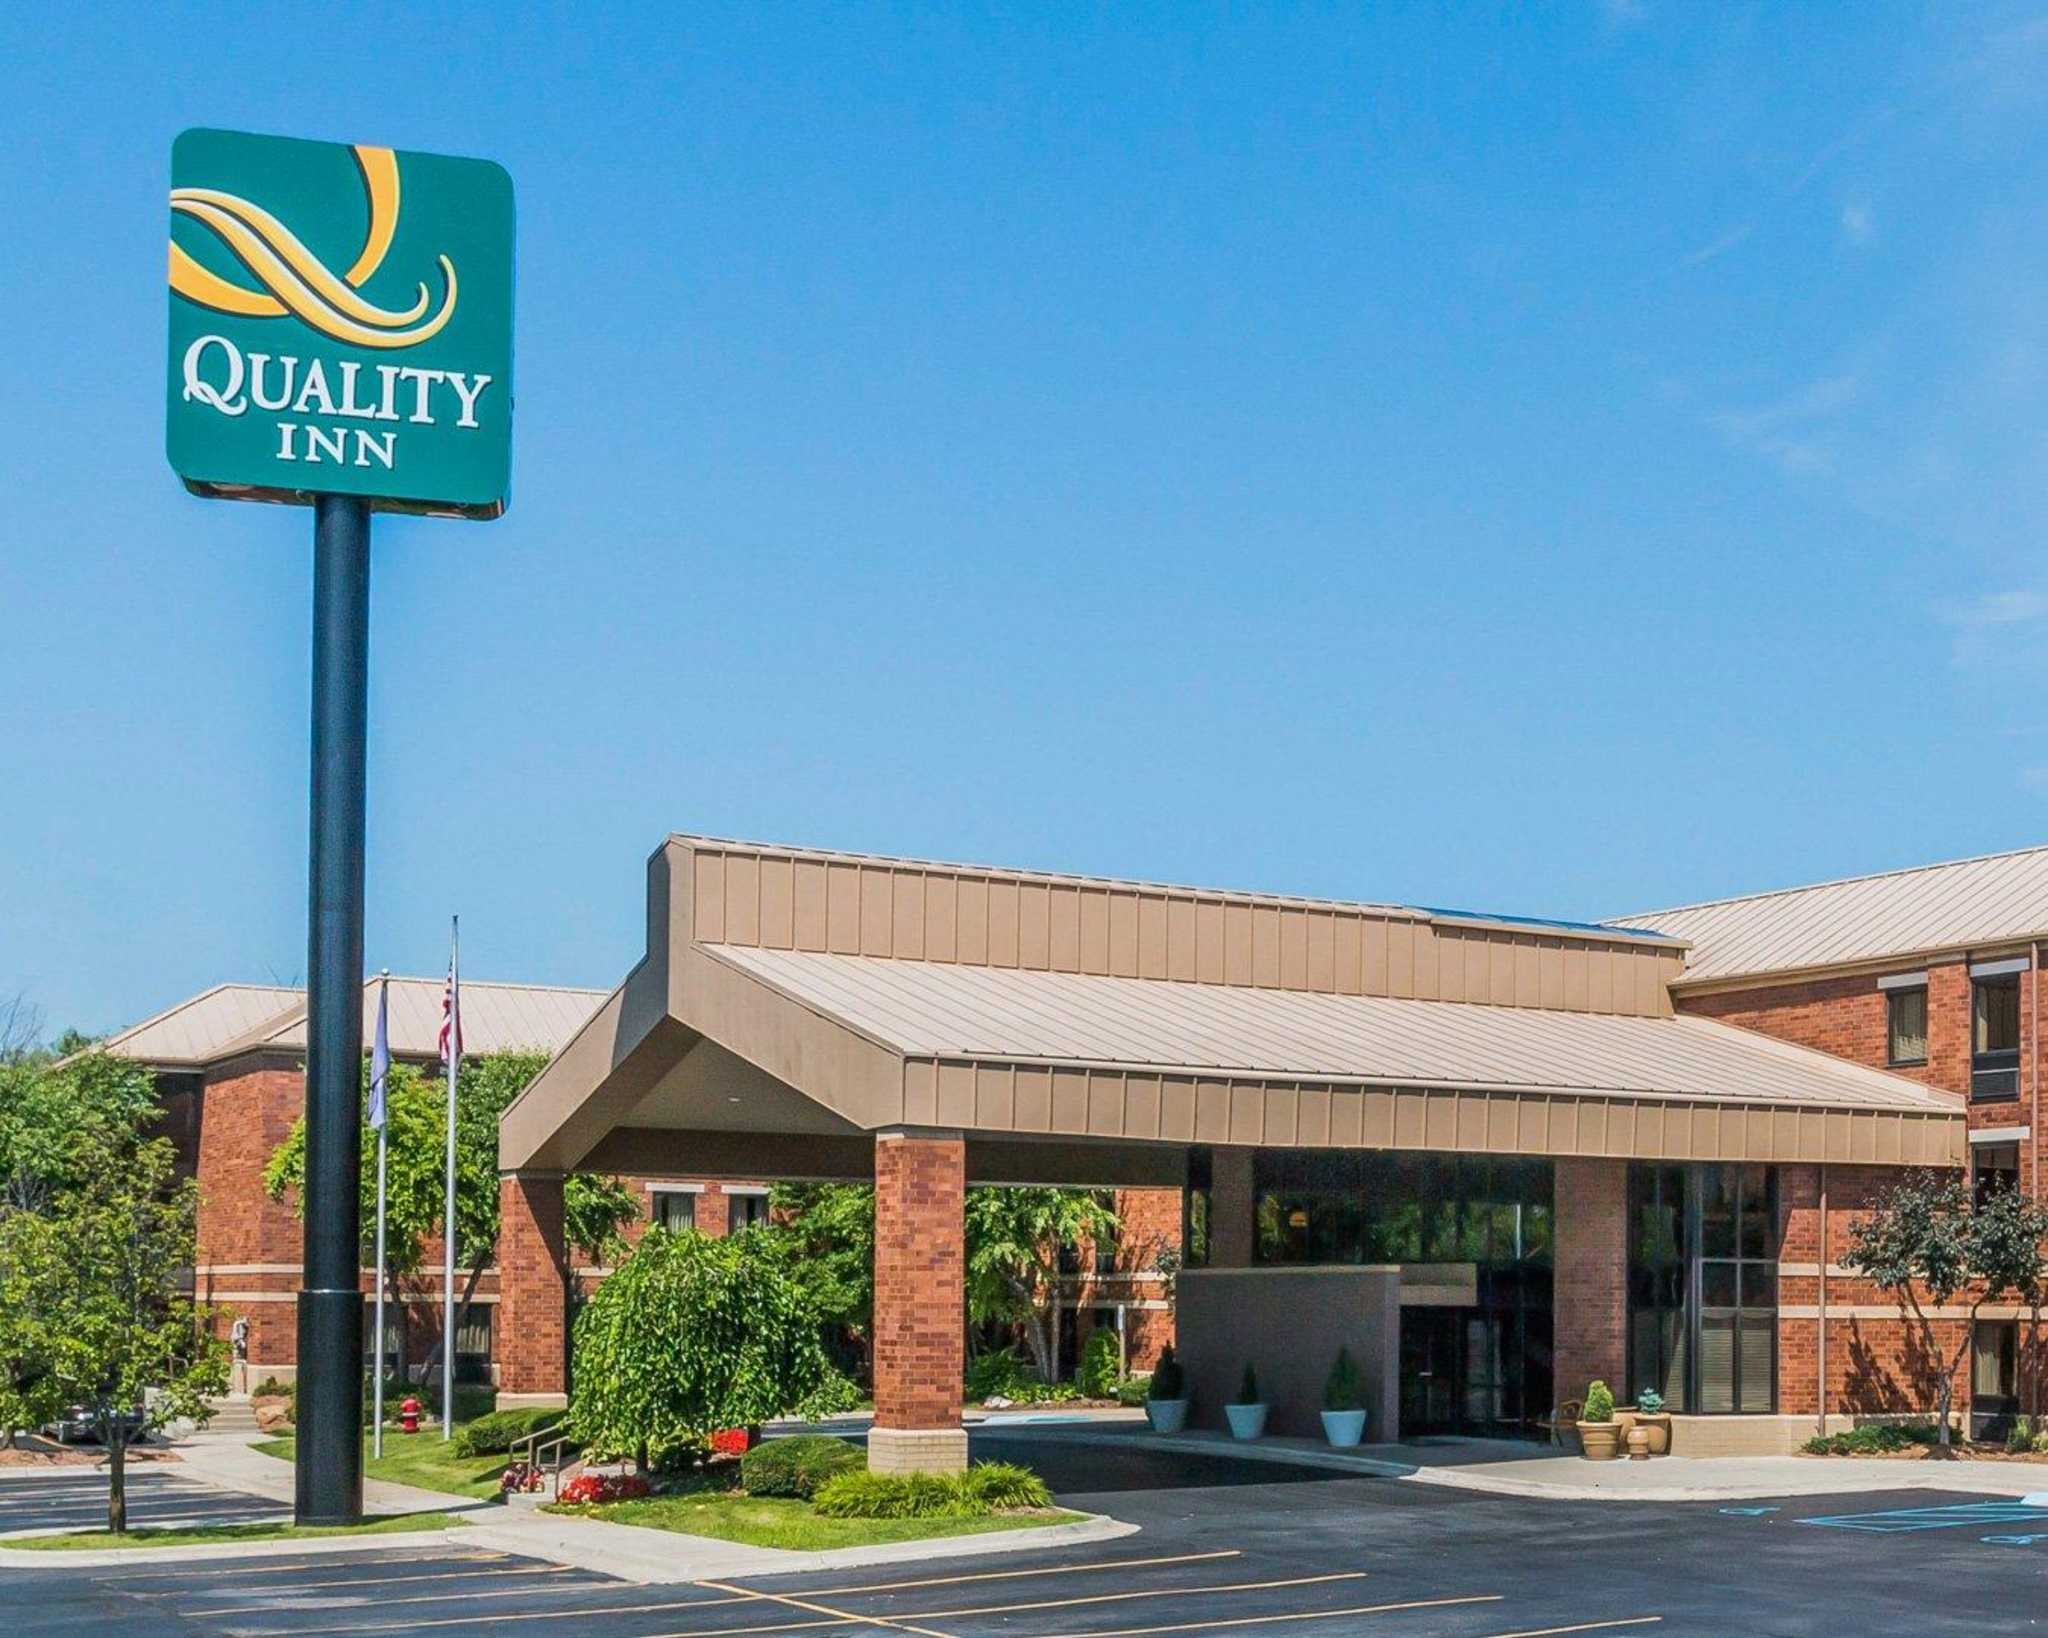 Quality inn auburn hills michigan mi for Quality hotel